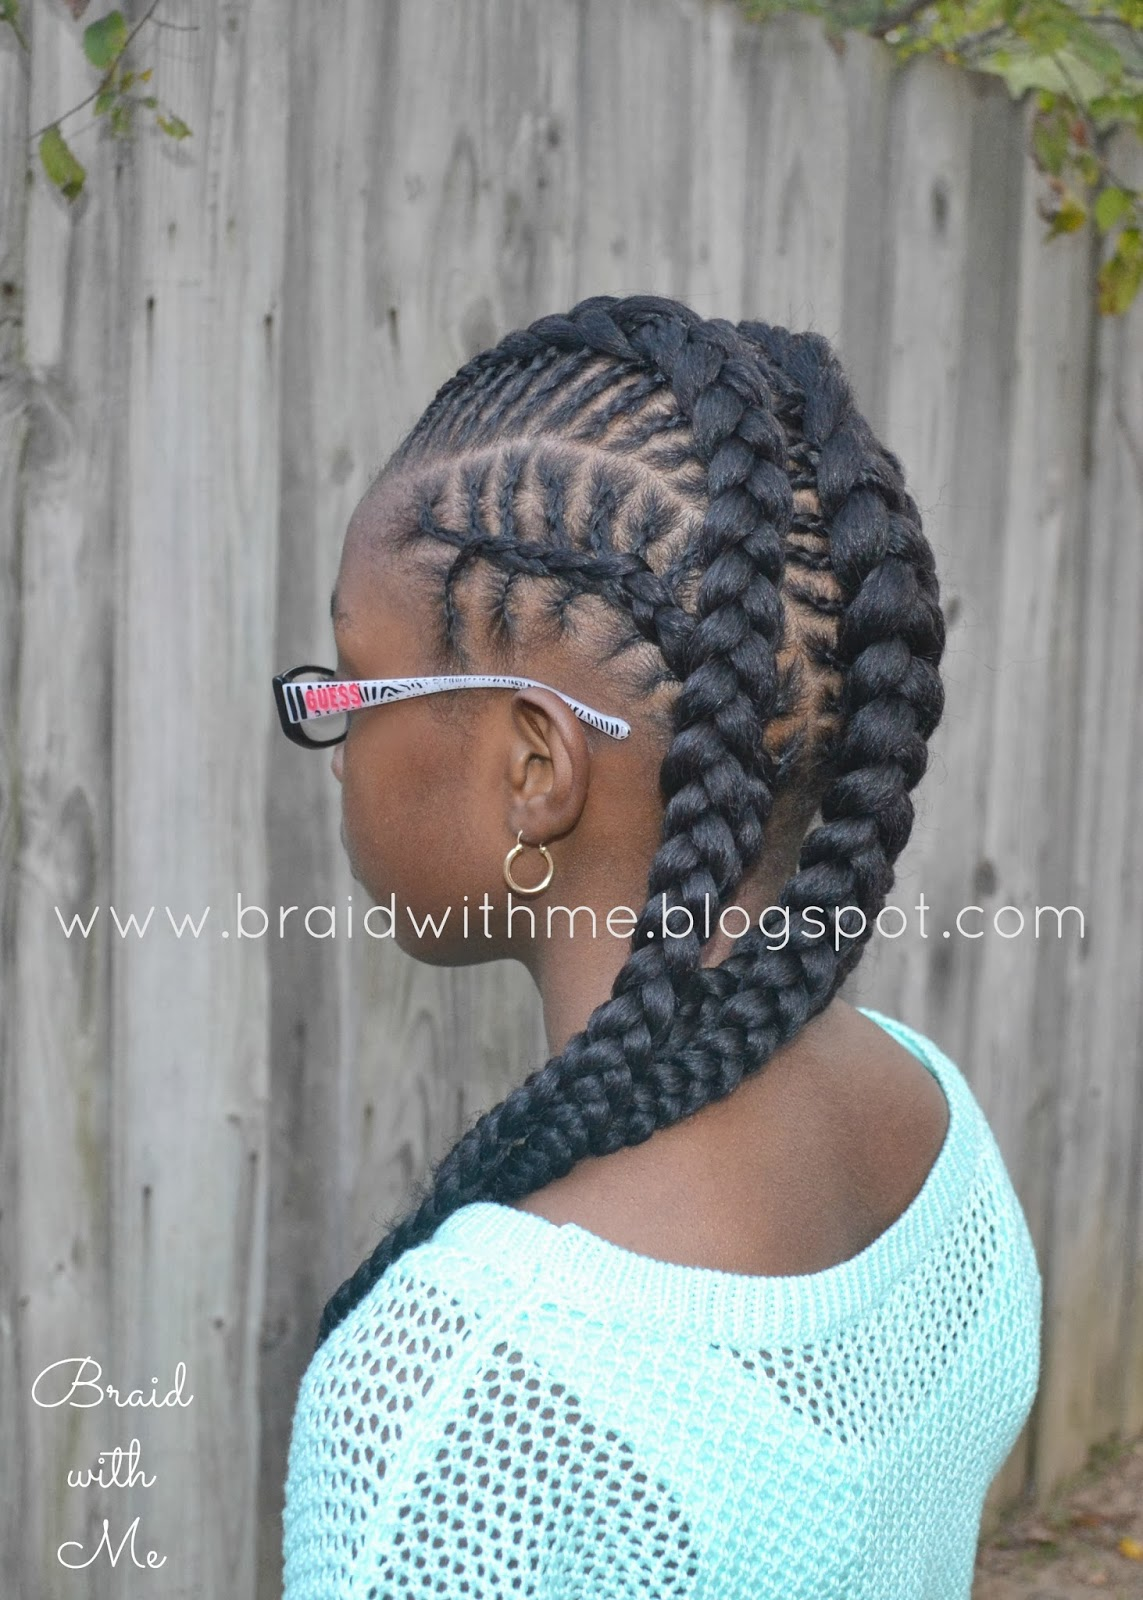 Braid with Me: Natural Styles for Kids: Fish Bone Cornrows